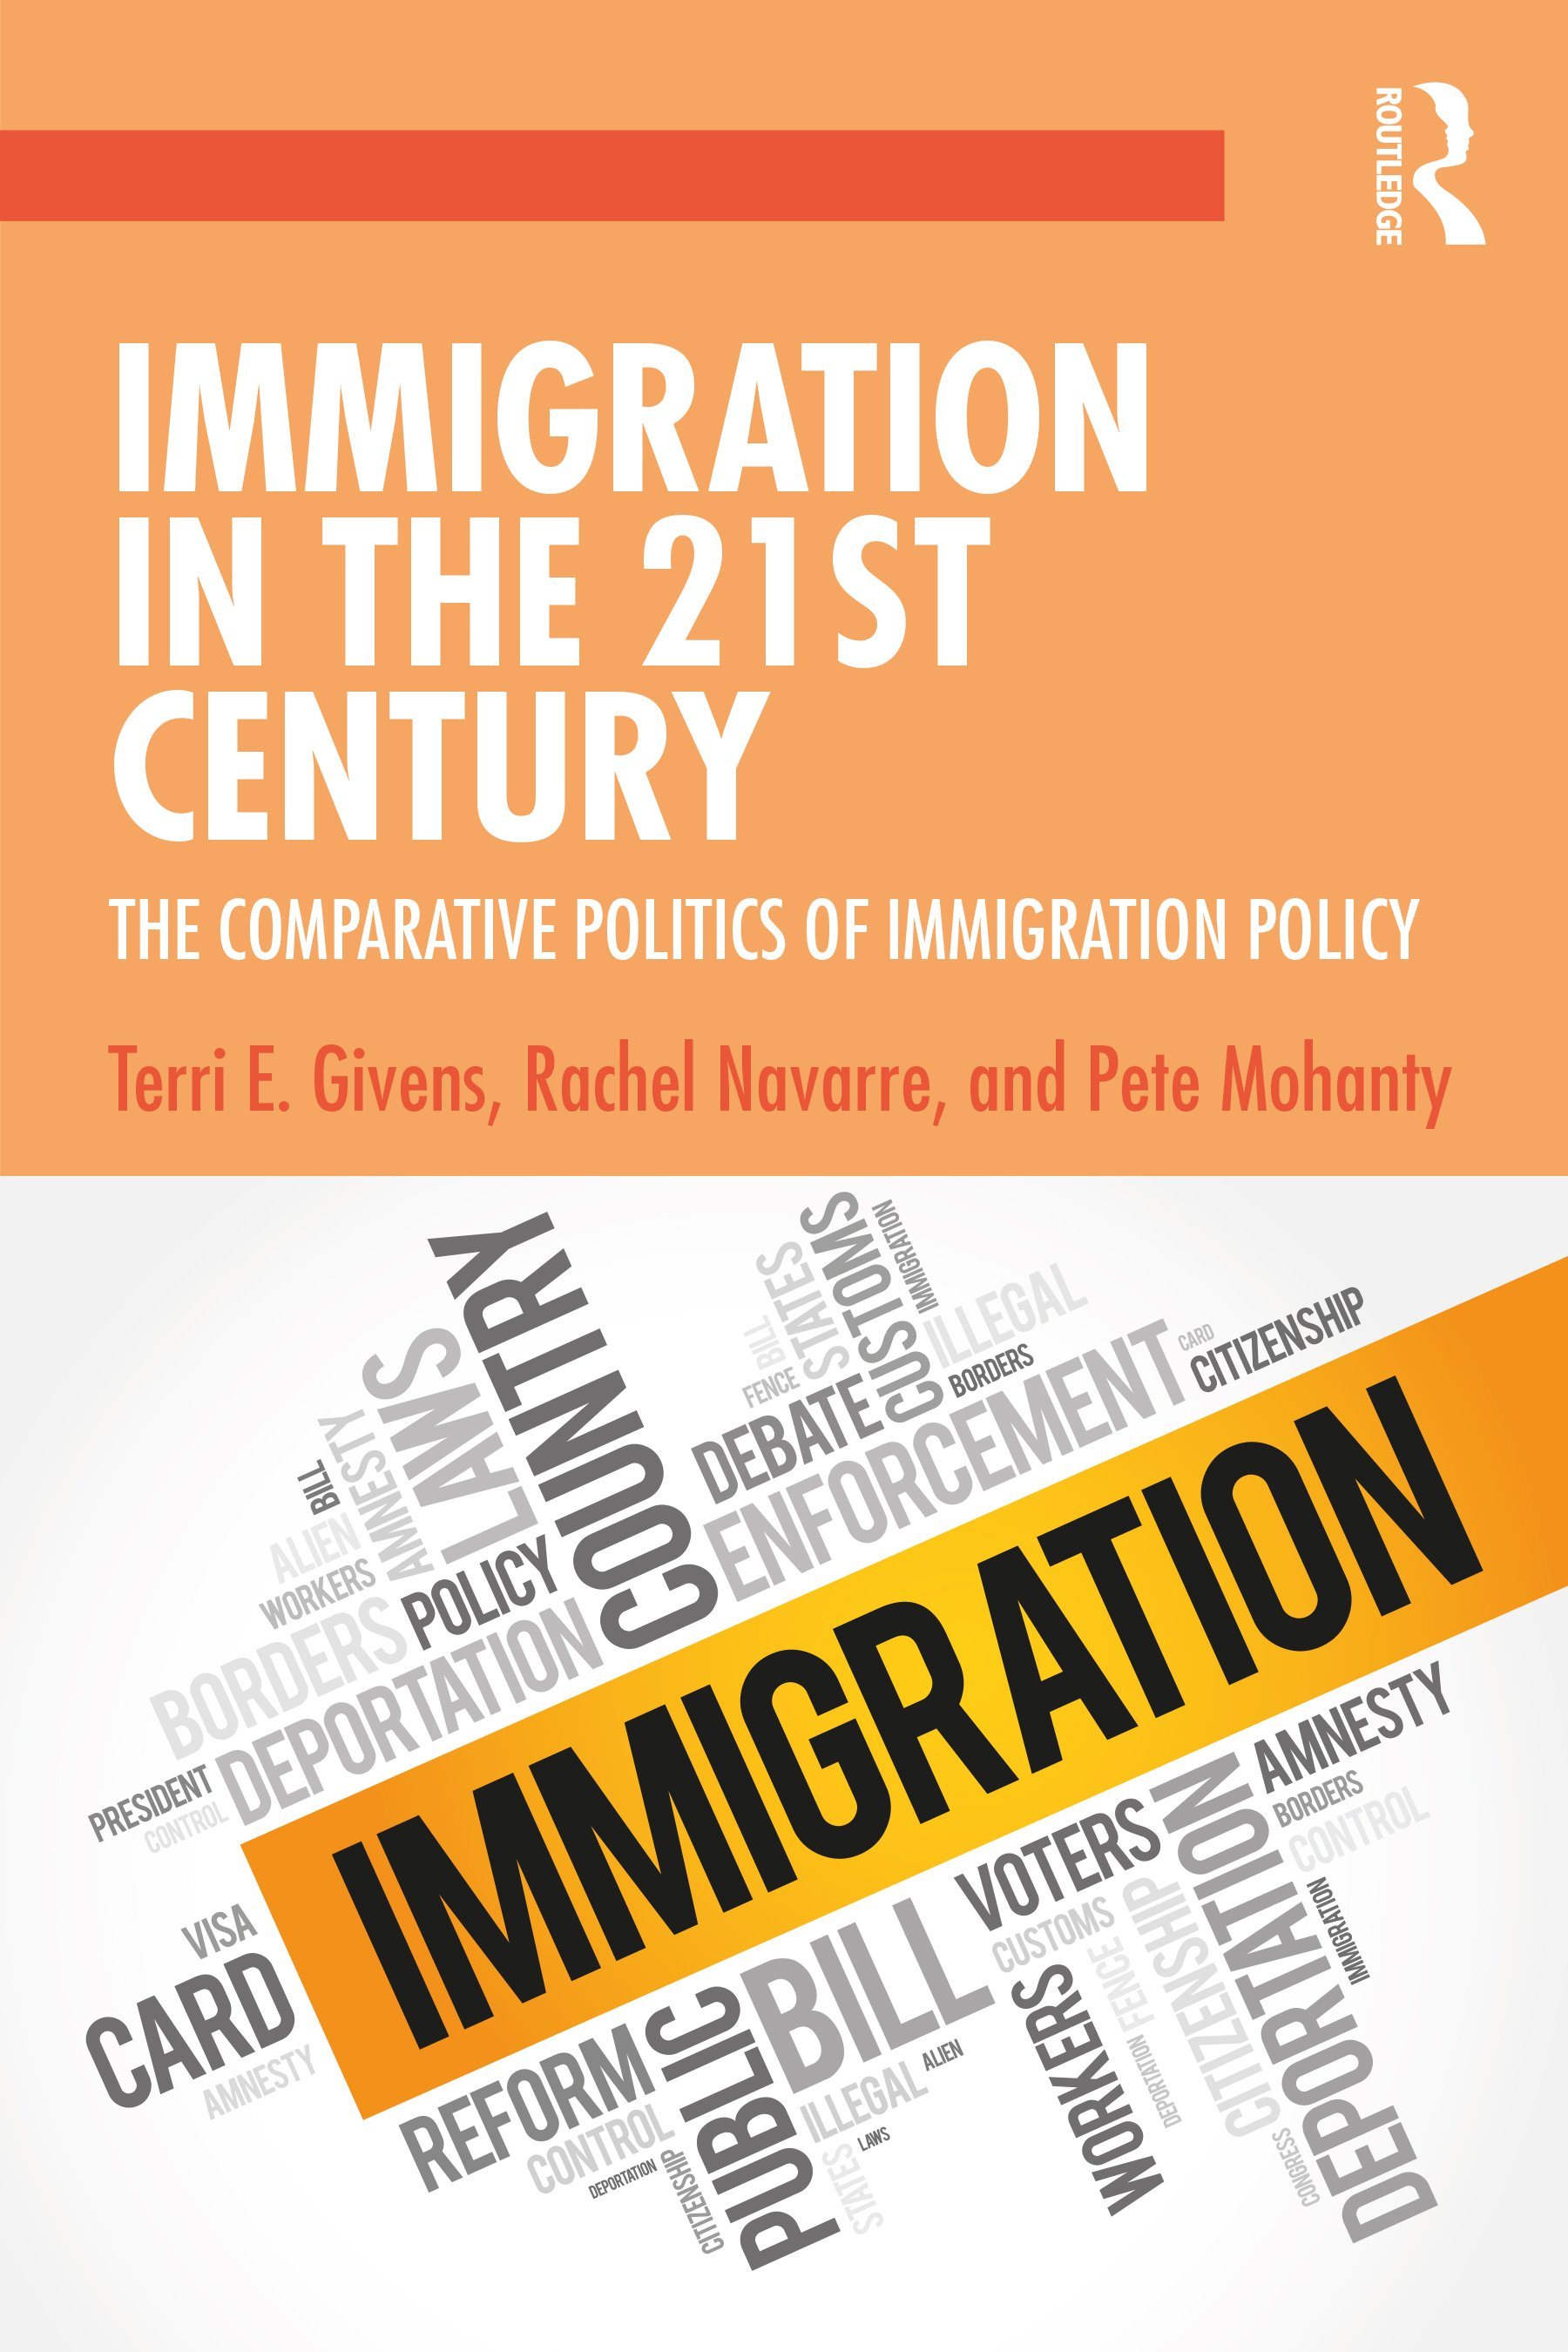 Immigration in the 21st Century: The Comparative Politics of Immigration Policy book cover